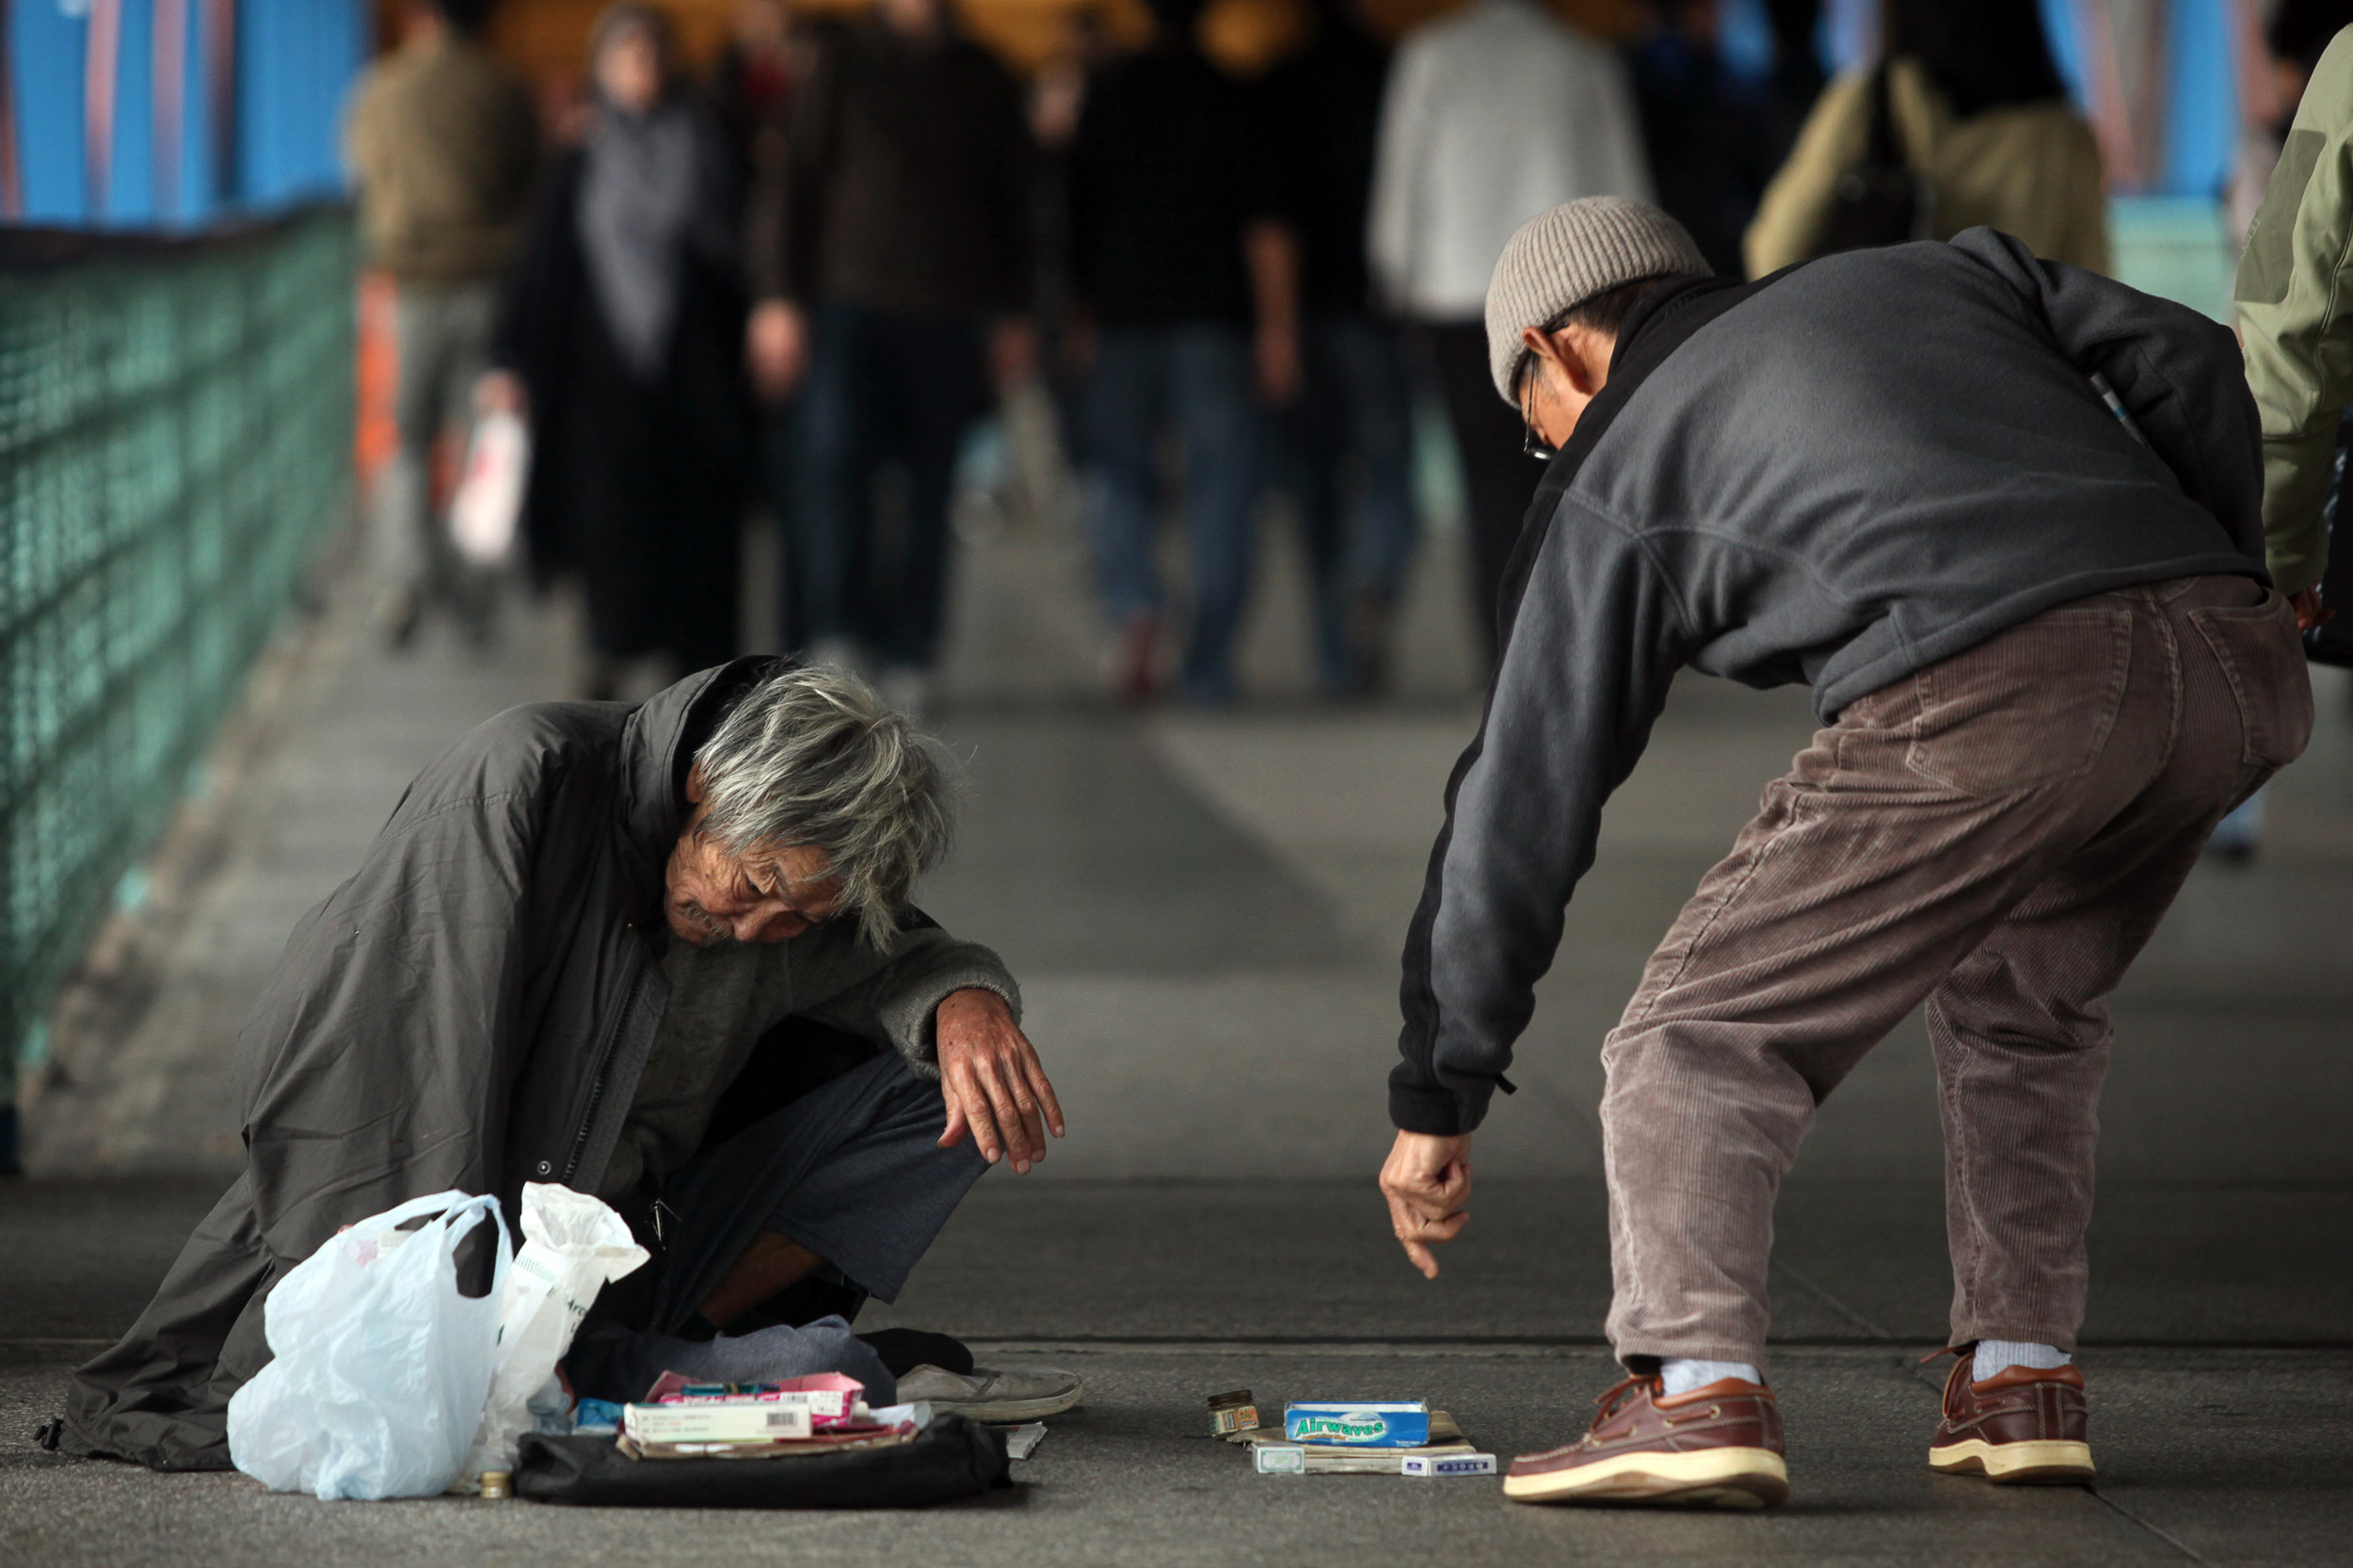 Hong Kong Poverty Line Shows Wealth Gap With One in Five ...